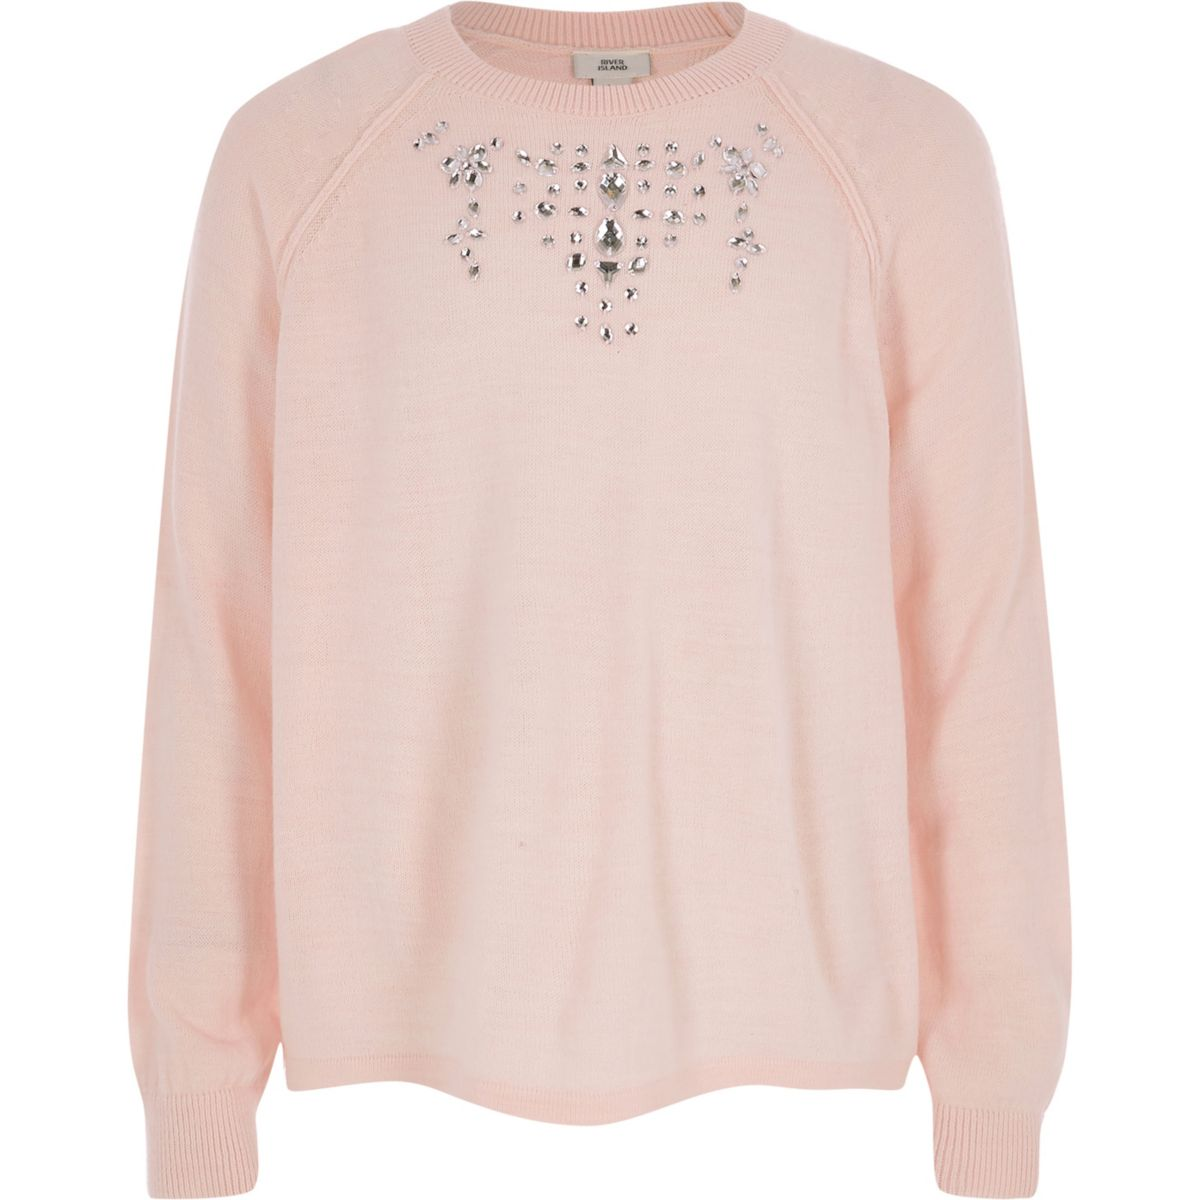 Girls pink embellished knit jumper